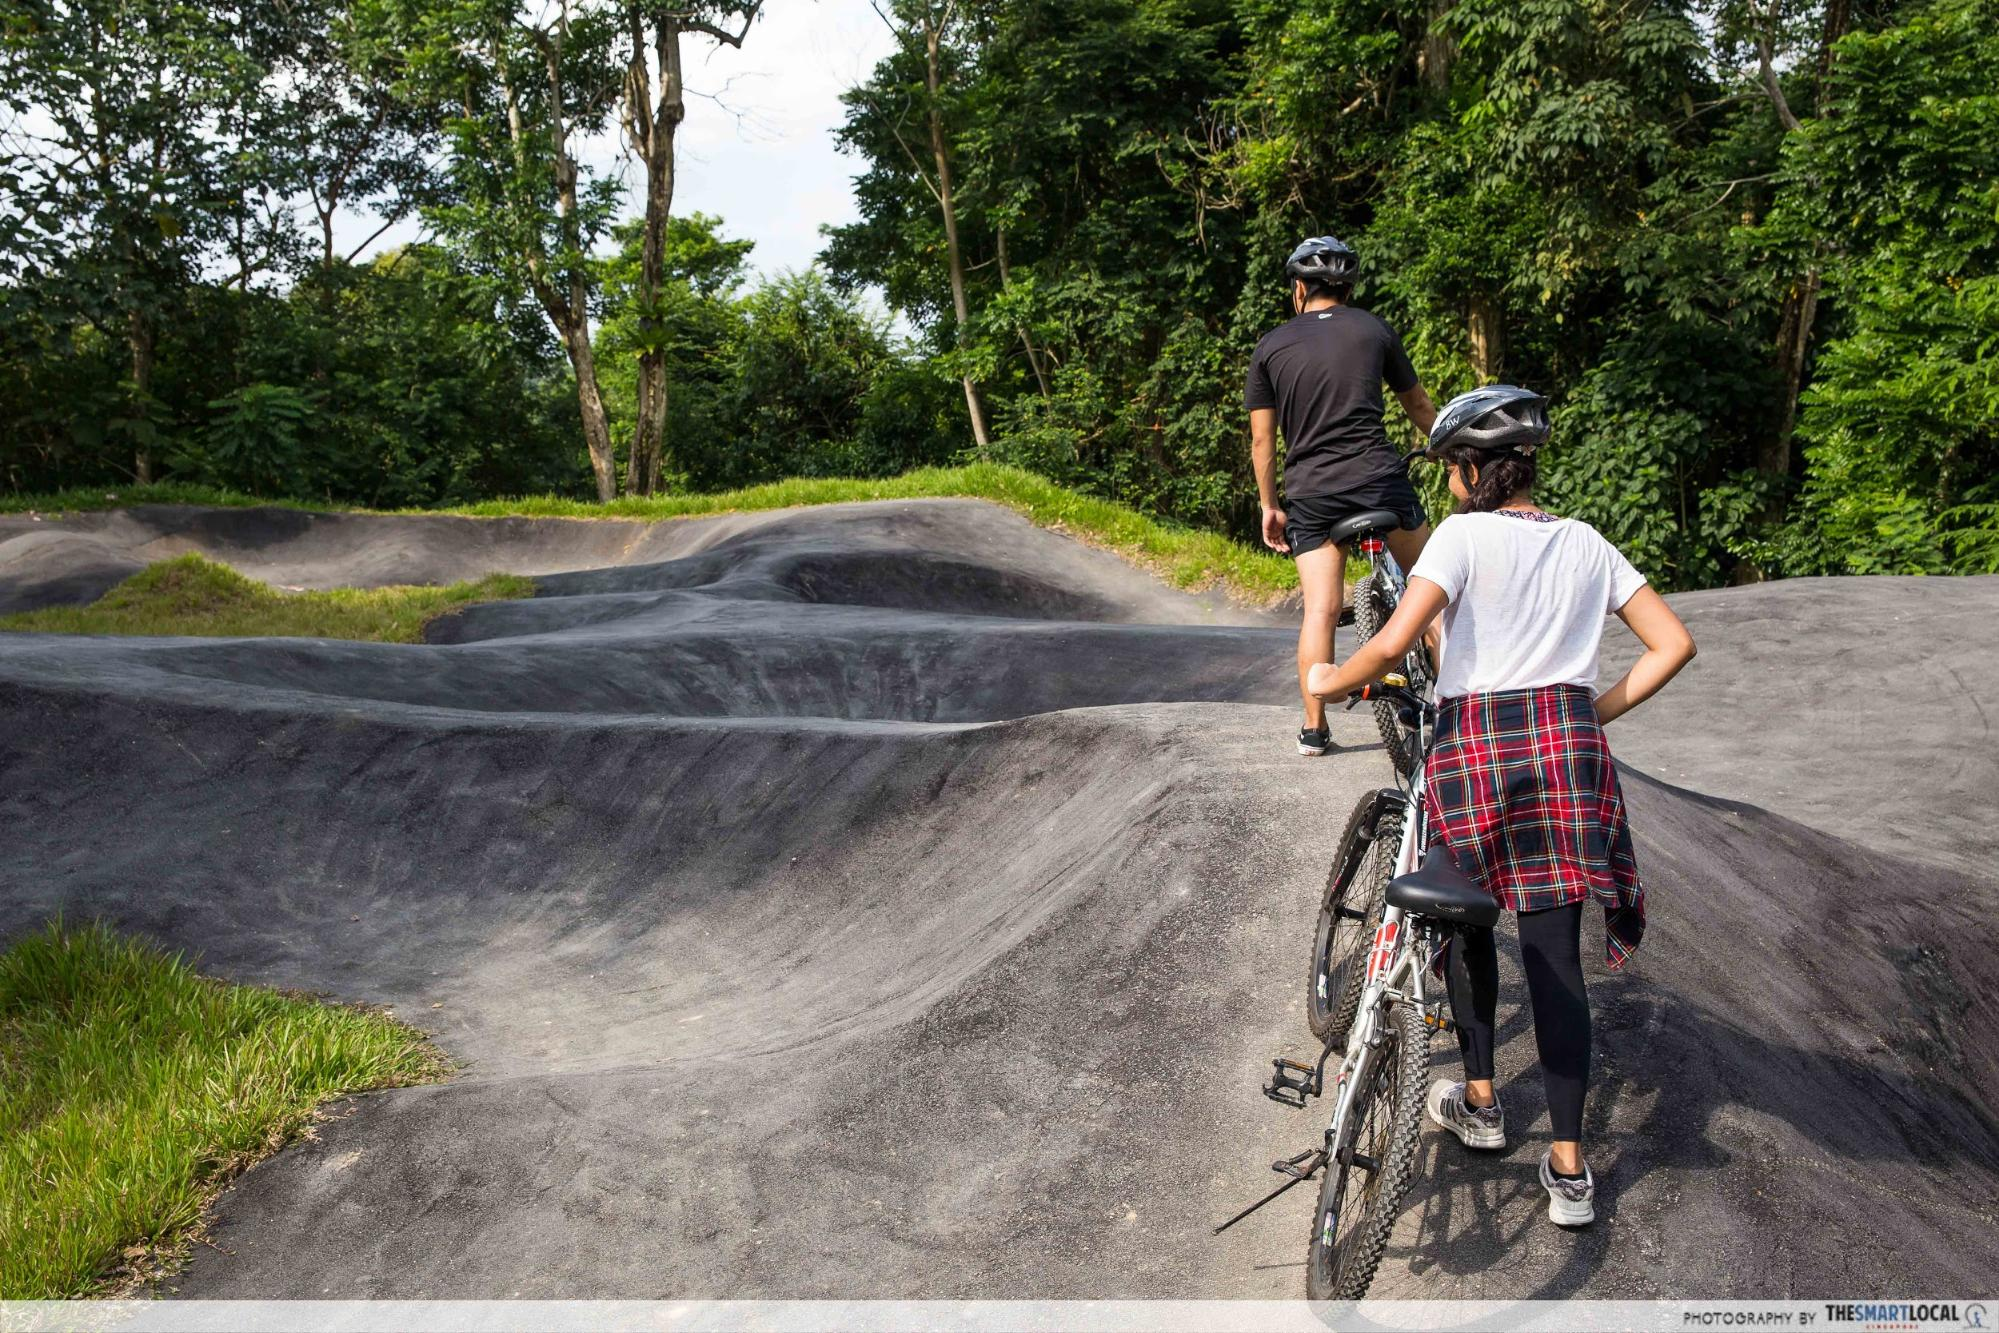 nature reserves and parks - chestnut pump track at chestnut nature park